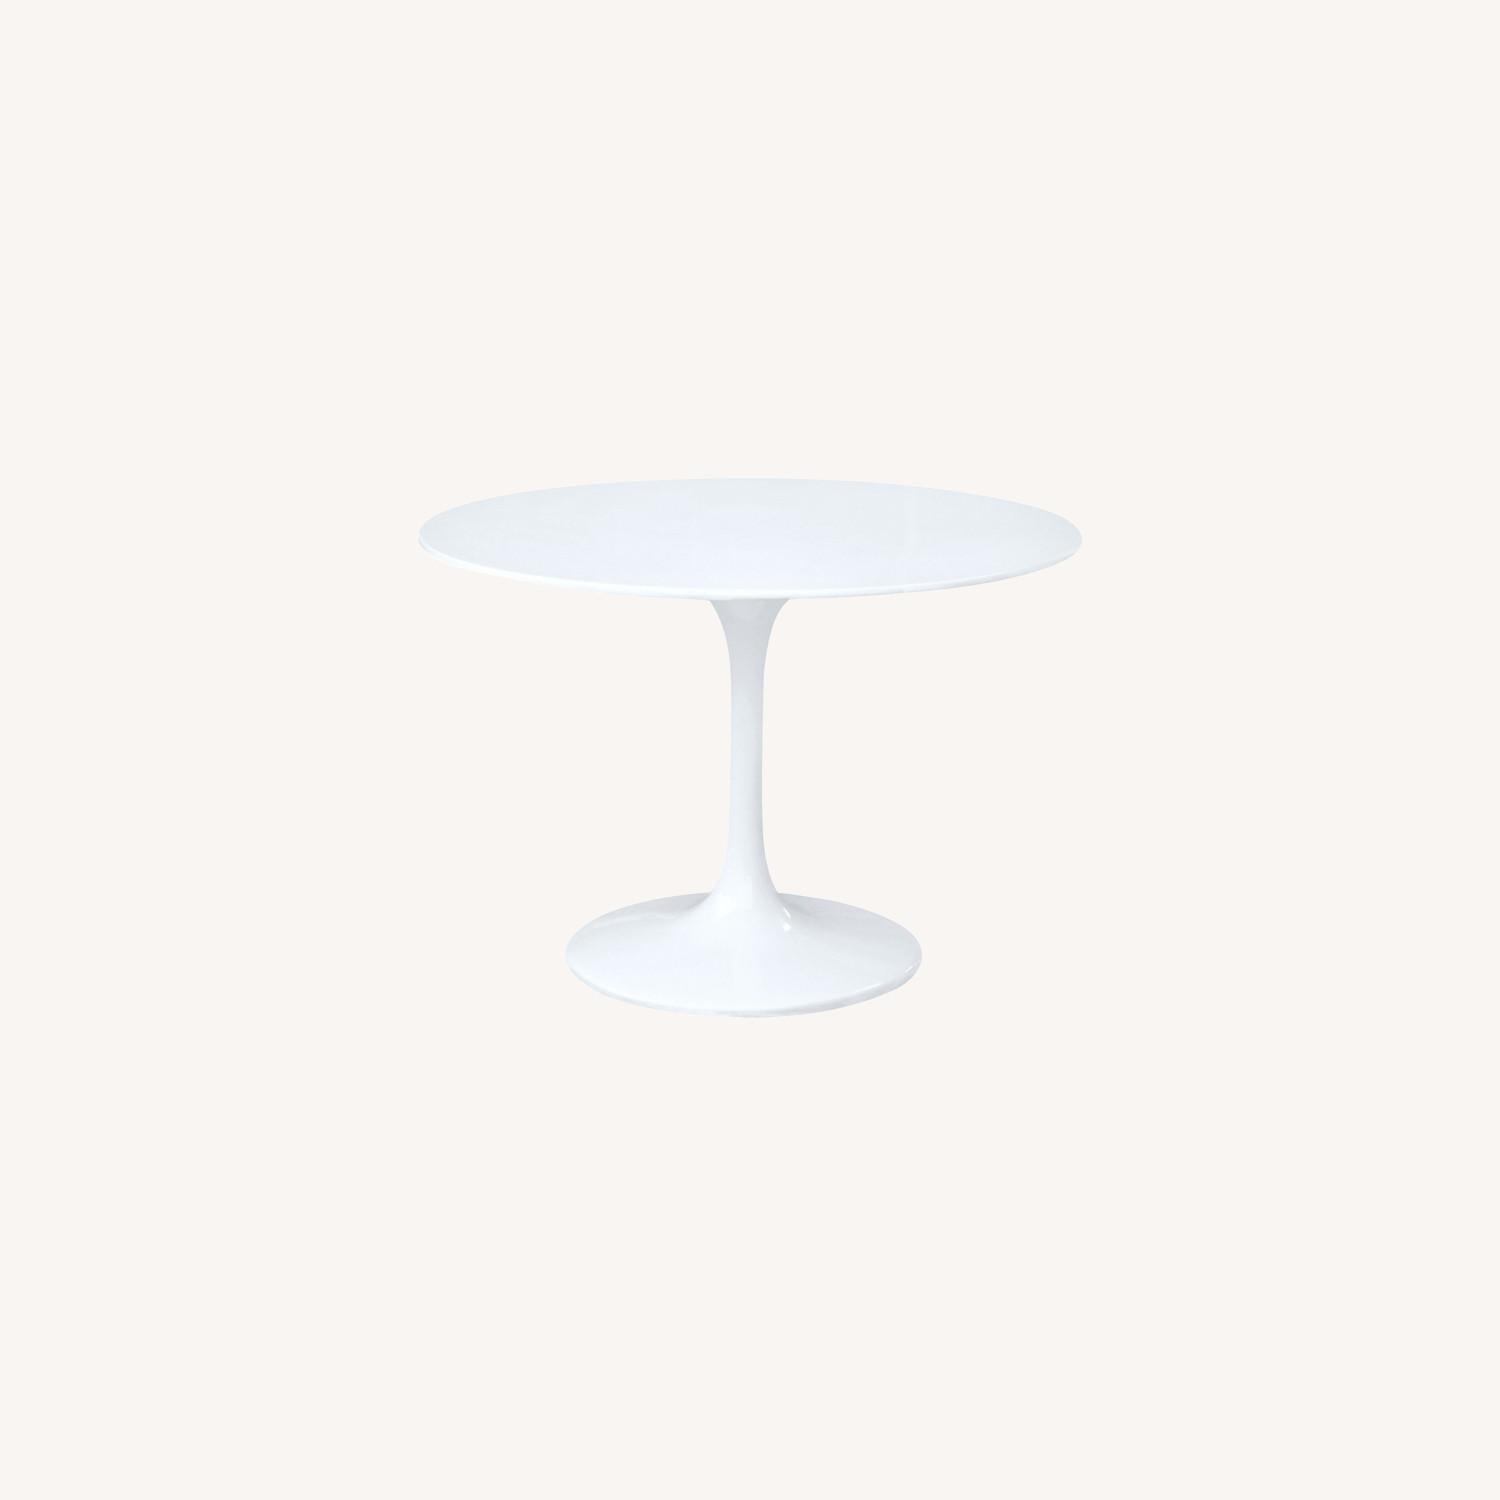 36-Inch Dining Table Molded In White Fiberglass - image-5